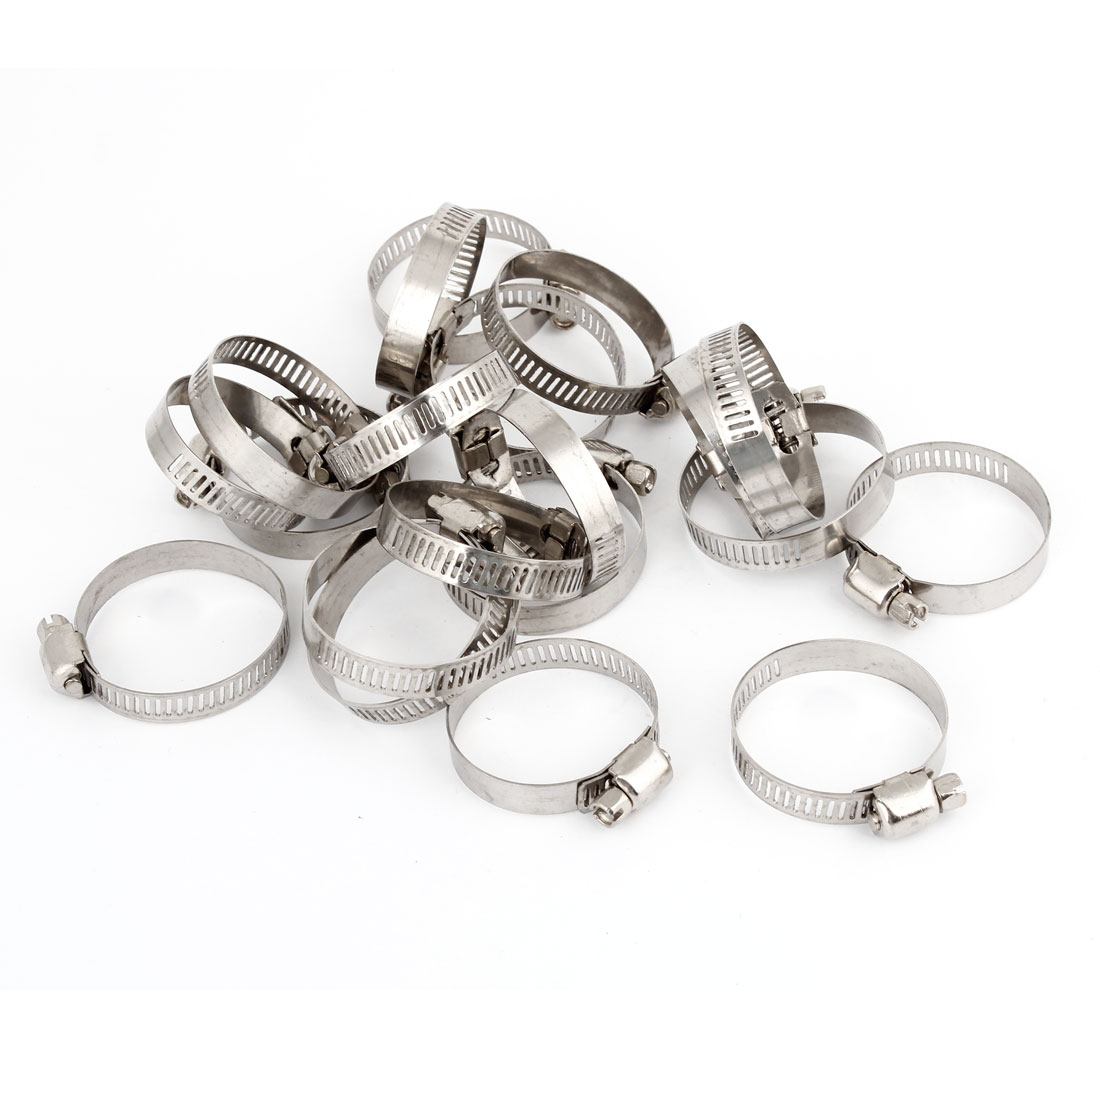 20 Pcs 25mm-38mm Hose Clamp Metal Adjustable Band Cable Tight Click Silver Tone